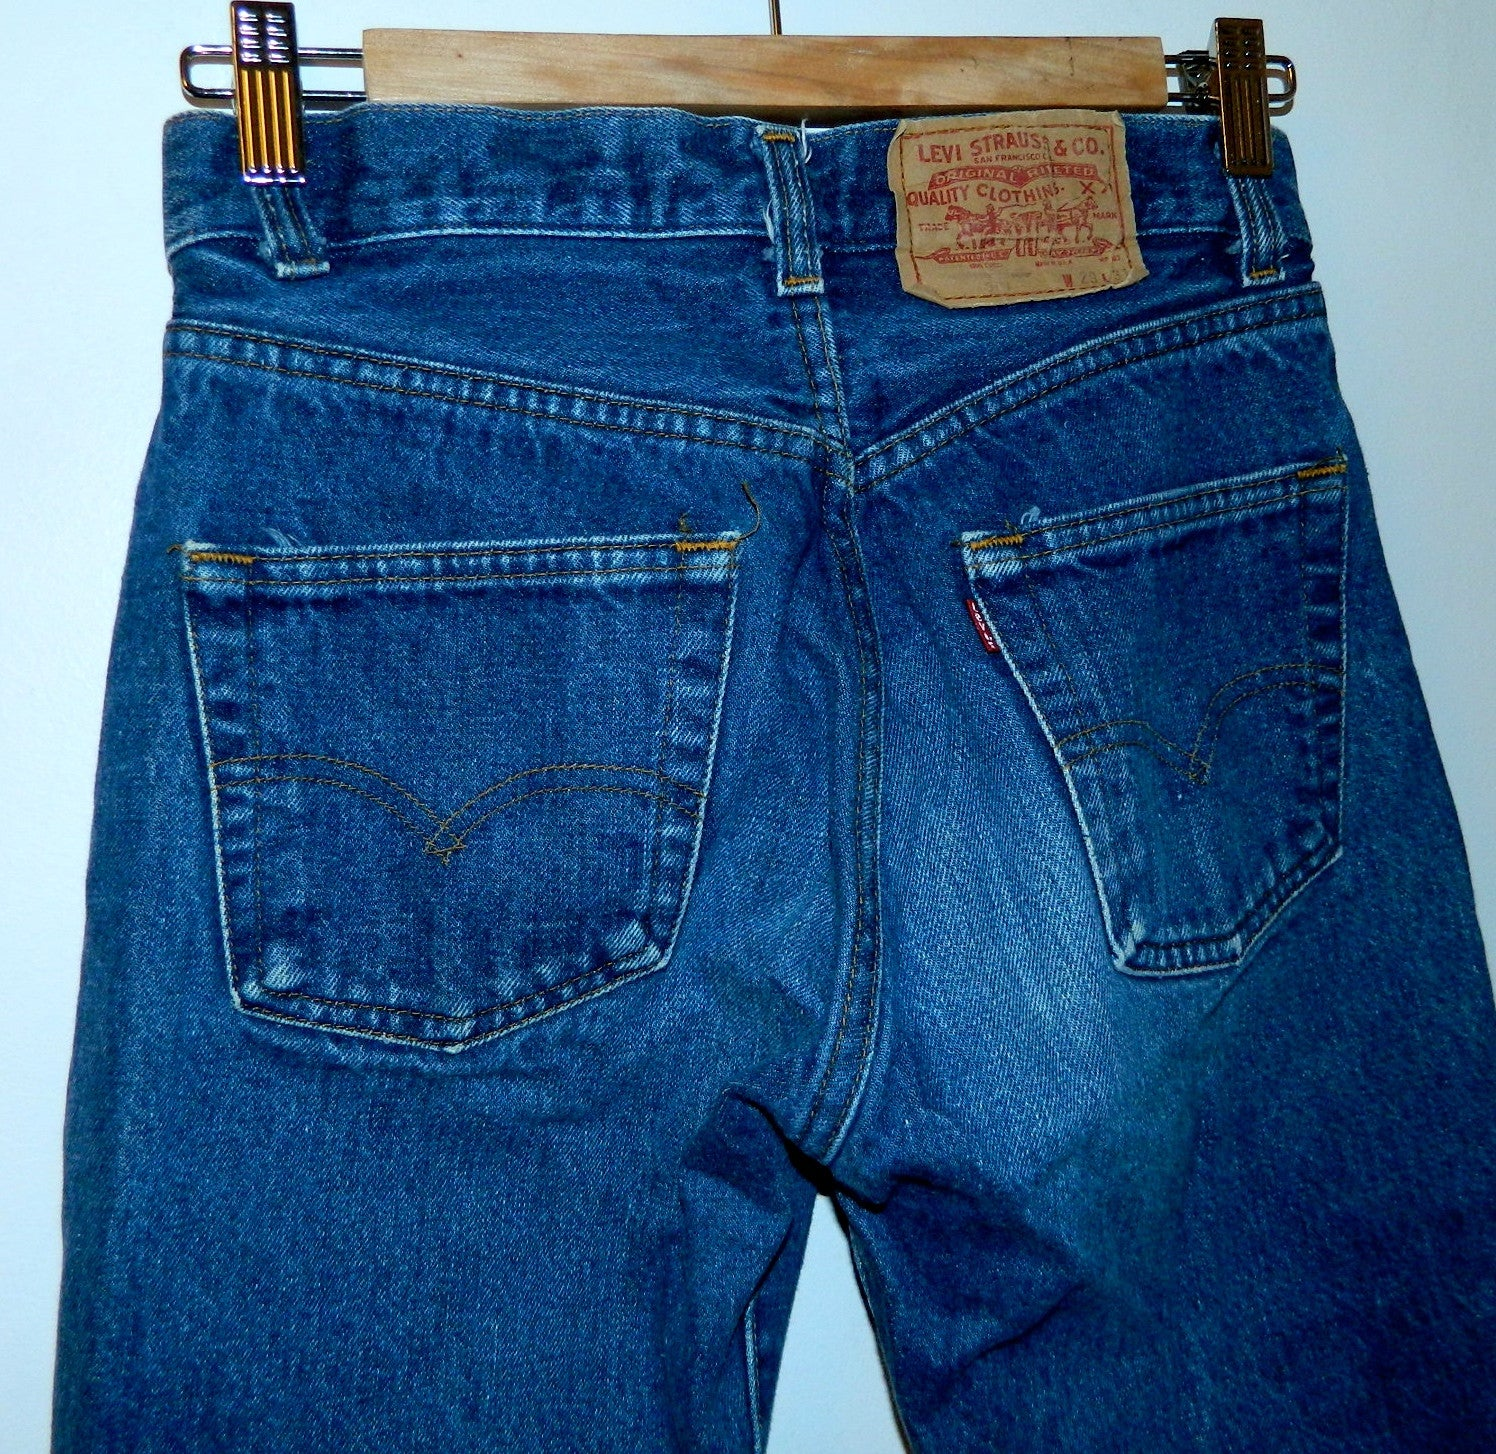 vintage 80s Levi's 501 jeans Shrink to Fit 1983 size 27